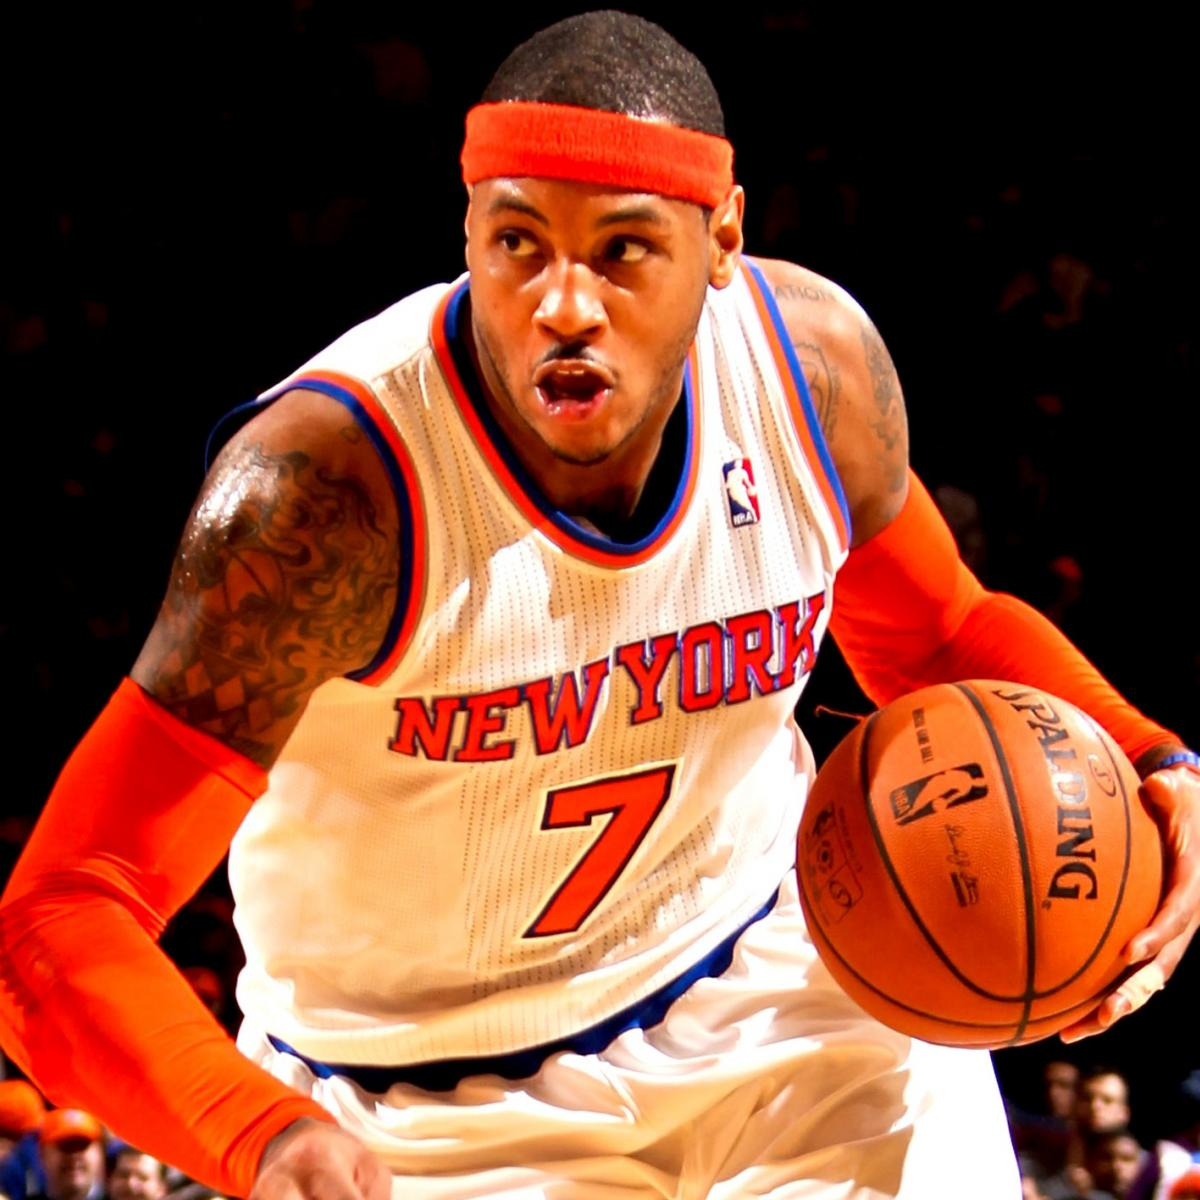 Portland Blazers Tonight: Portland Blazers Vs. New York Knicks: Live Score, Results